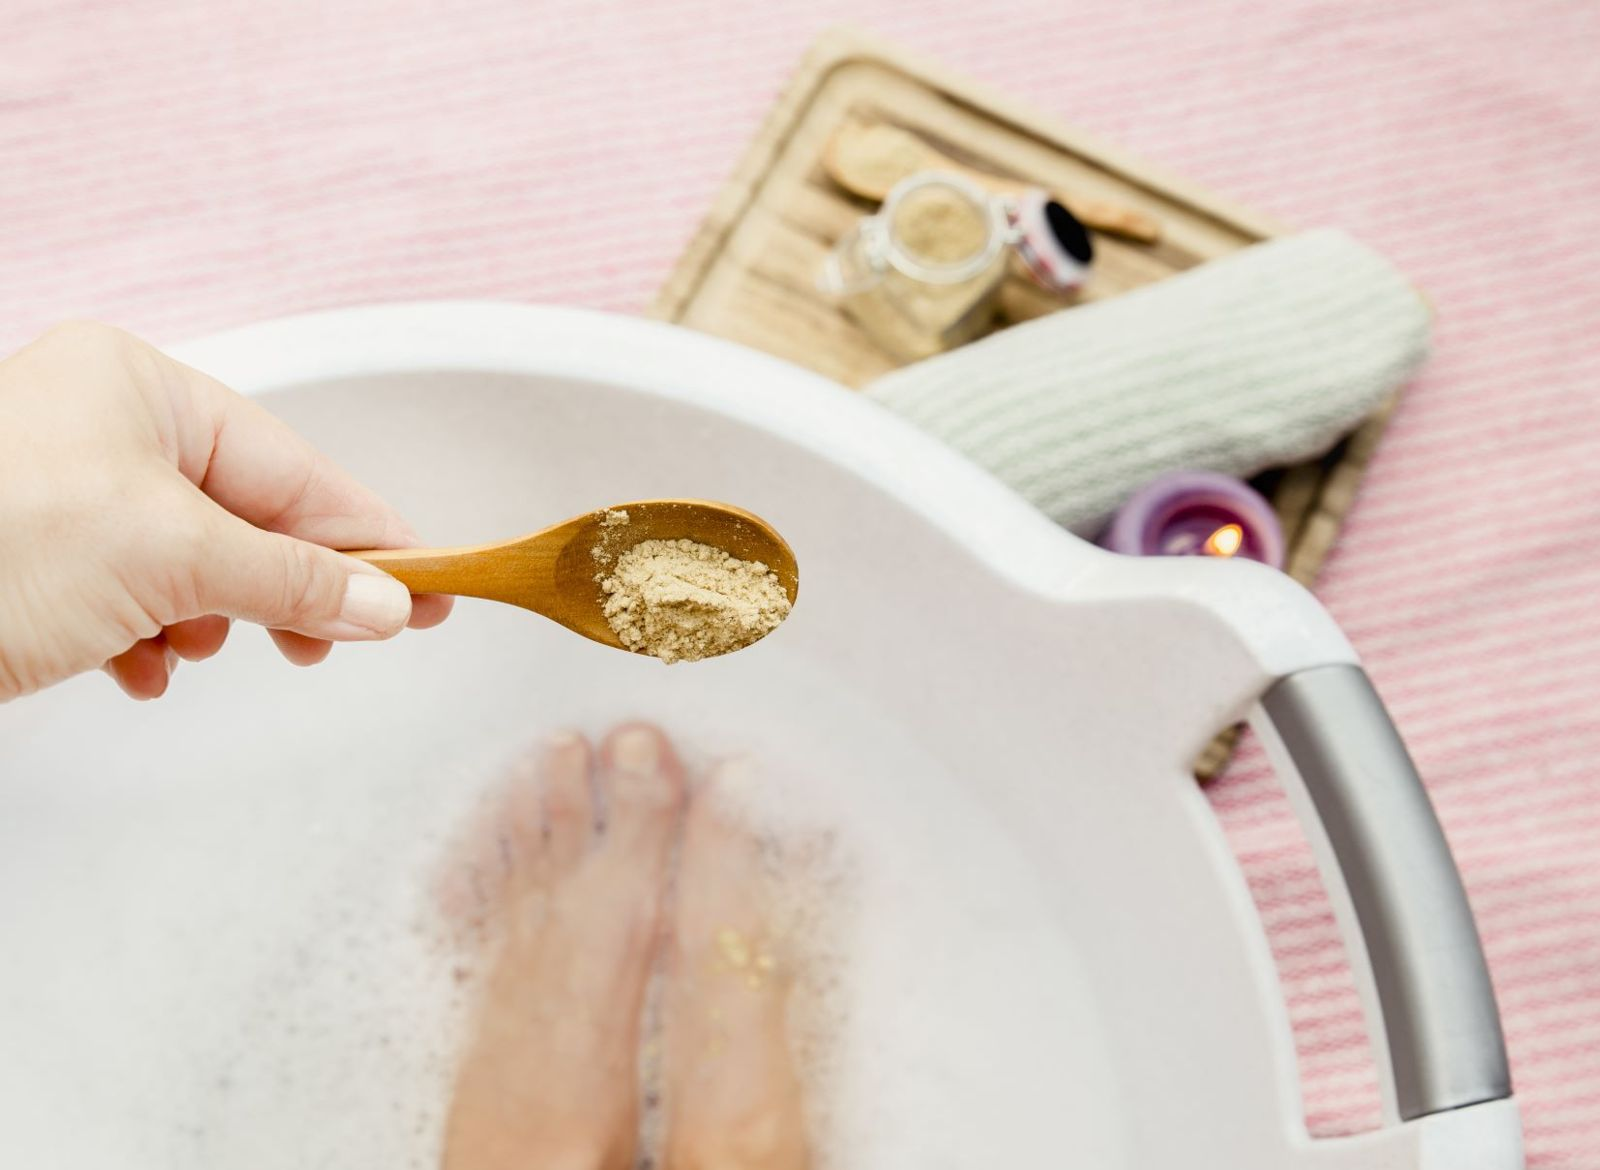 Tough on your feet last night? Give them a healing soak with epsom salt for a next-day recovery fix